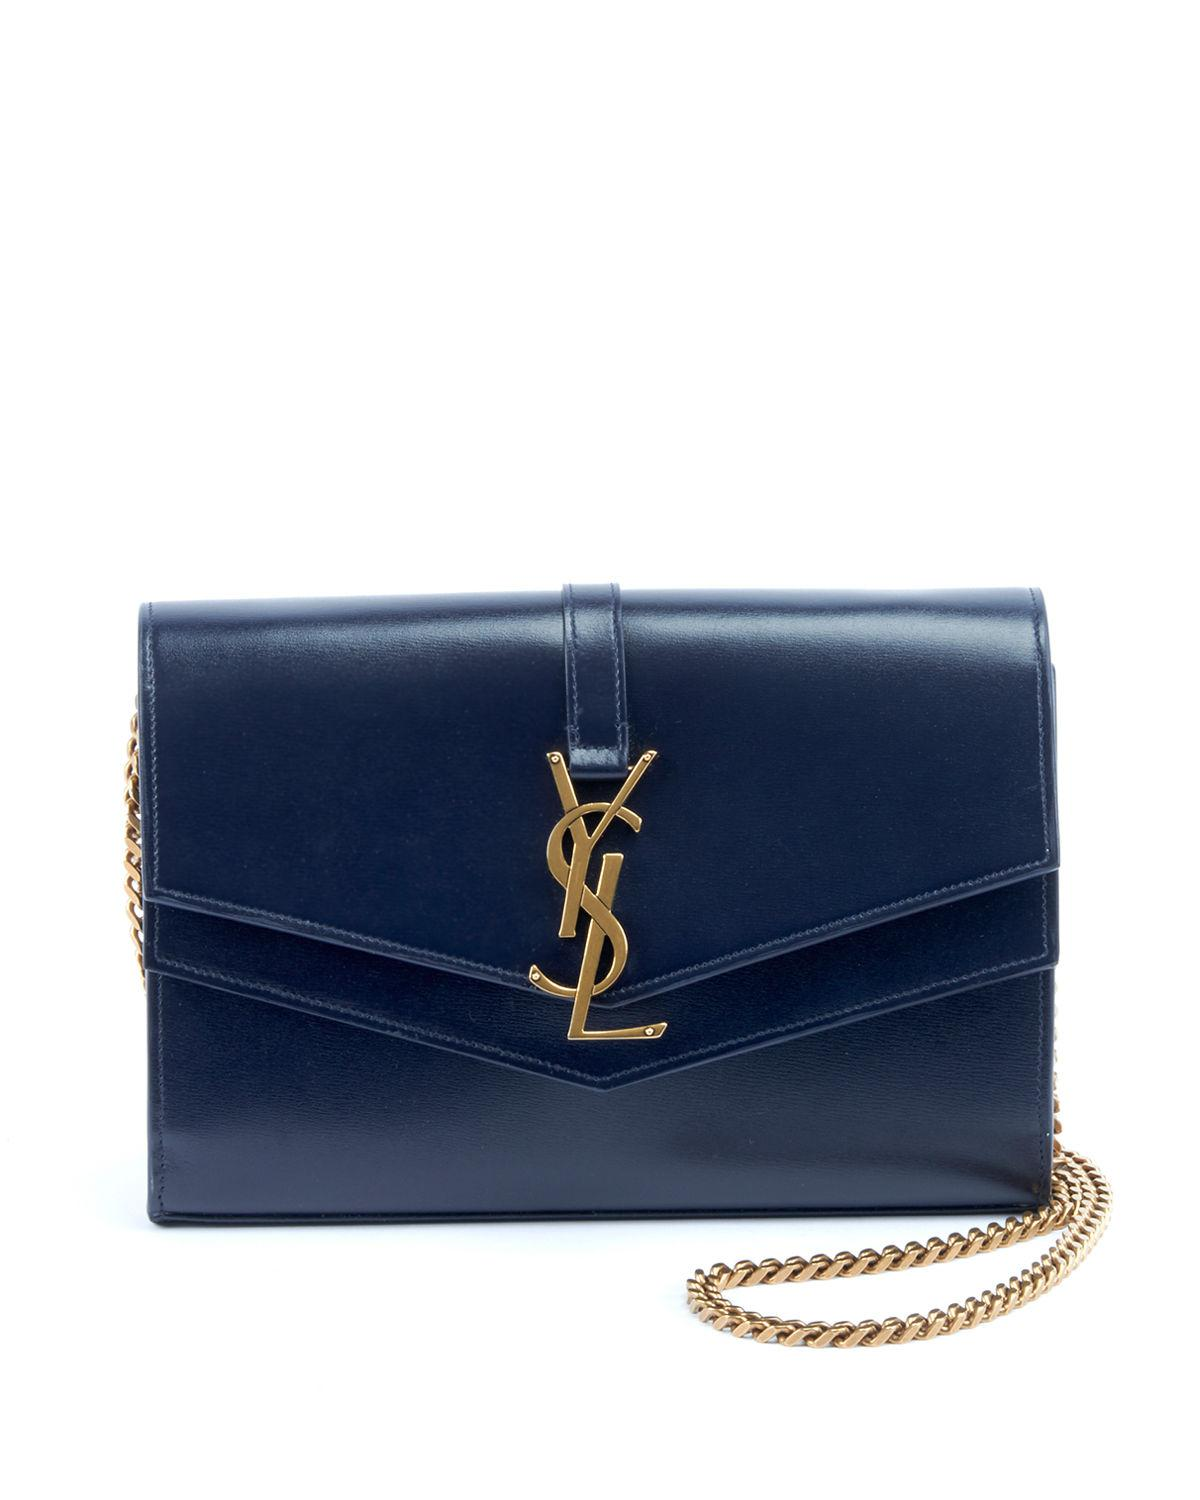 a39becedf88 Saint Laurent Sulpice Monogram Ysl V-Flap Wallet On Chain In Dark Blue